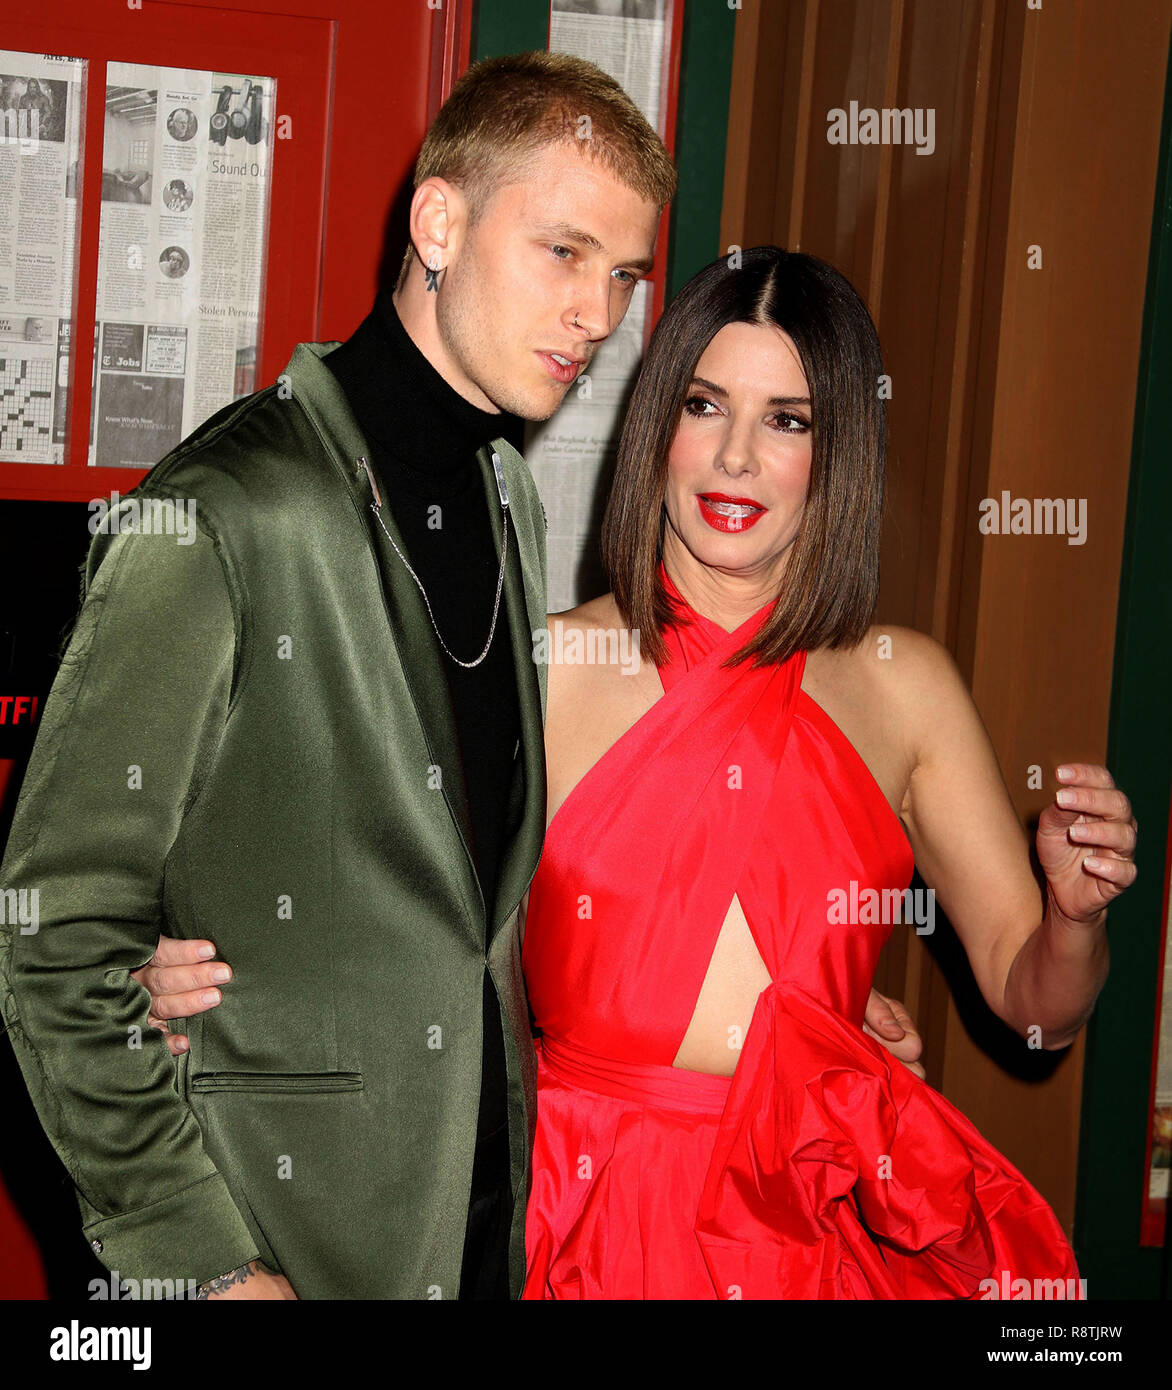 New York City, New York, USA. 17th Dec, 2018. Actor COLSON BAKER aka MACHINE GUN KELLY and actress SANDRA BULLOCK attend the New York Special Screening of 'Bird Box' held at Alice Tully Hall at Lincoln Center. Credit: Nancy Kaszerman/ZUMA Wire/Alamy Live News - Stock Image